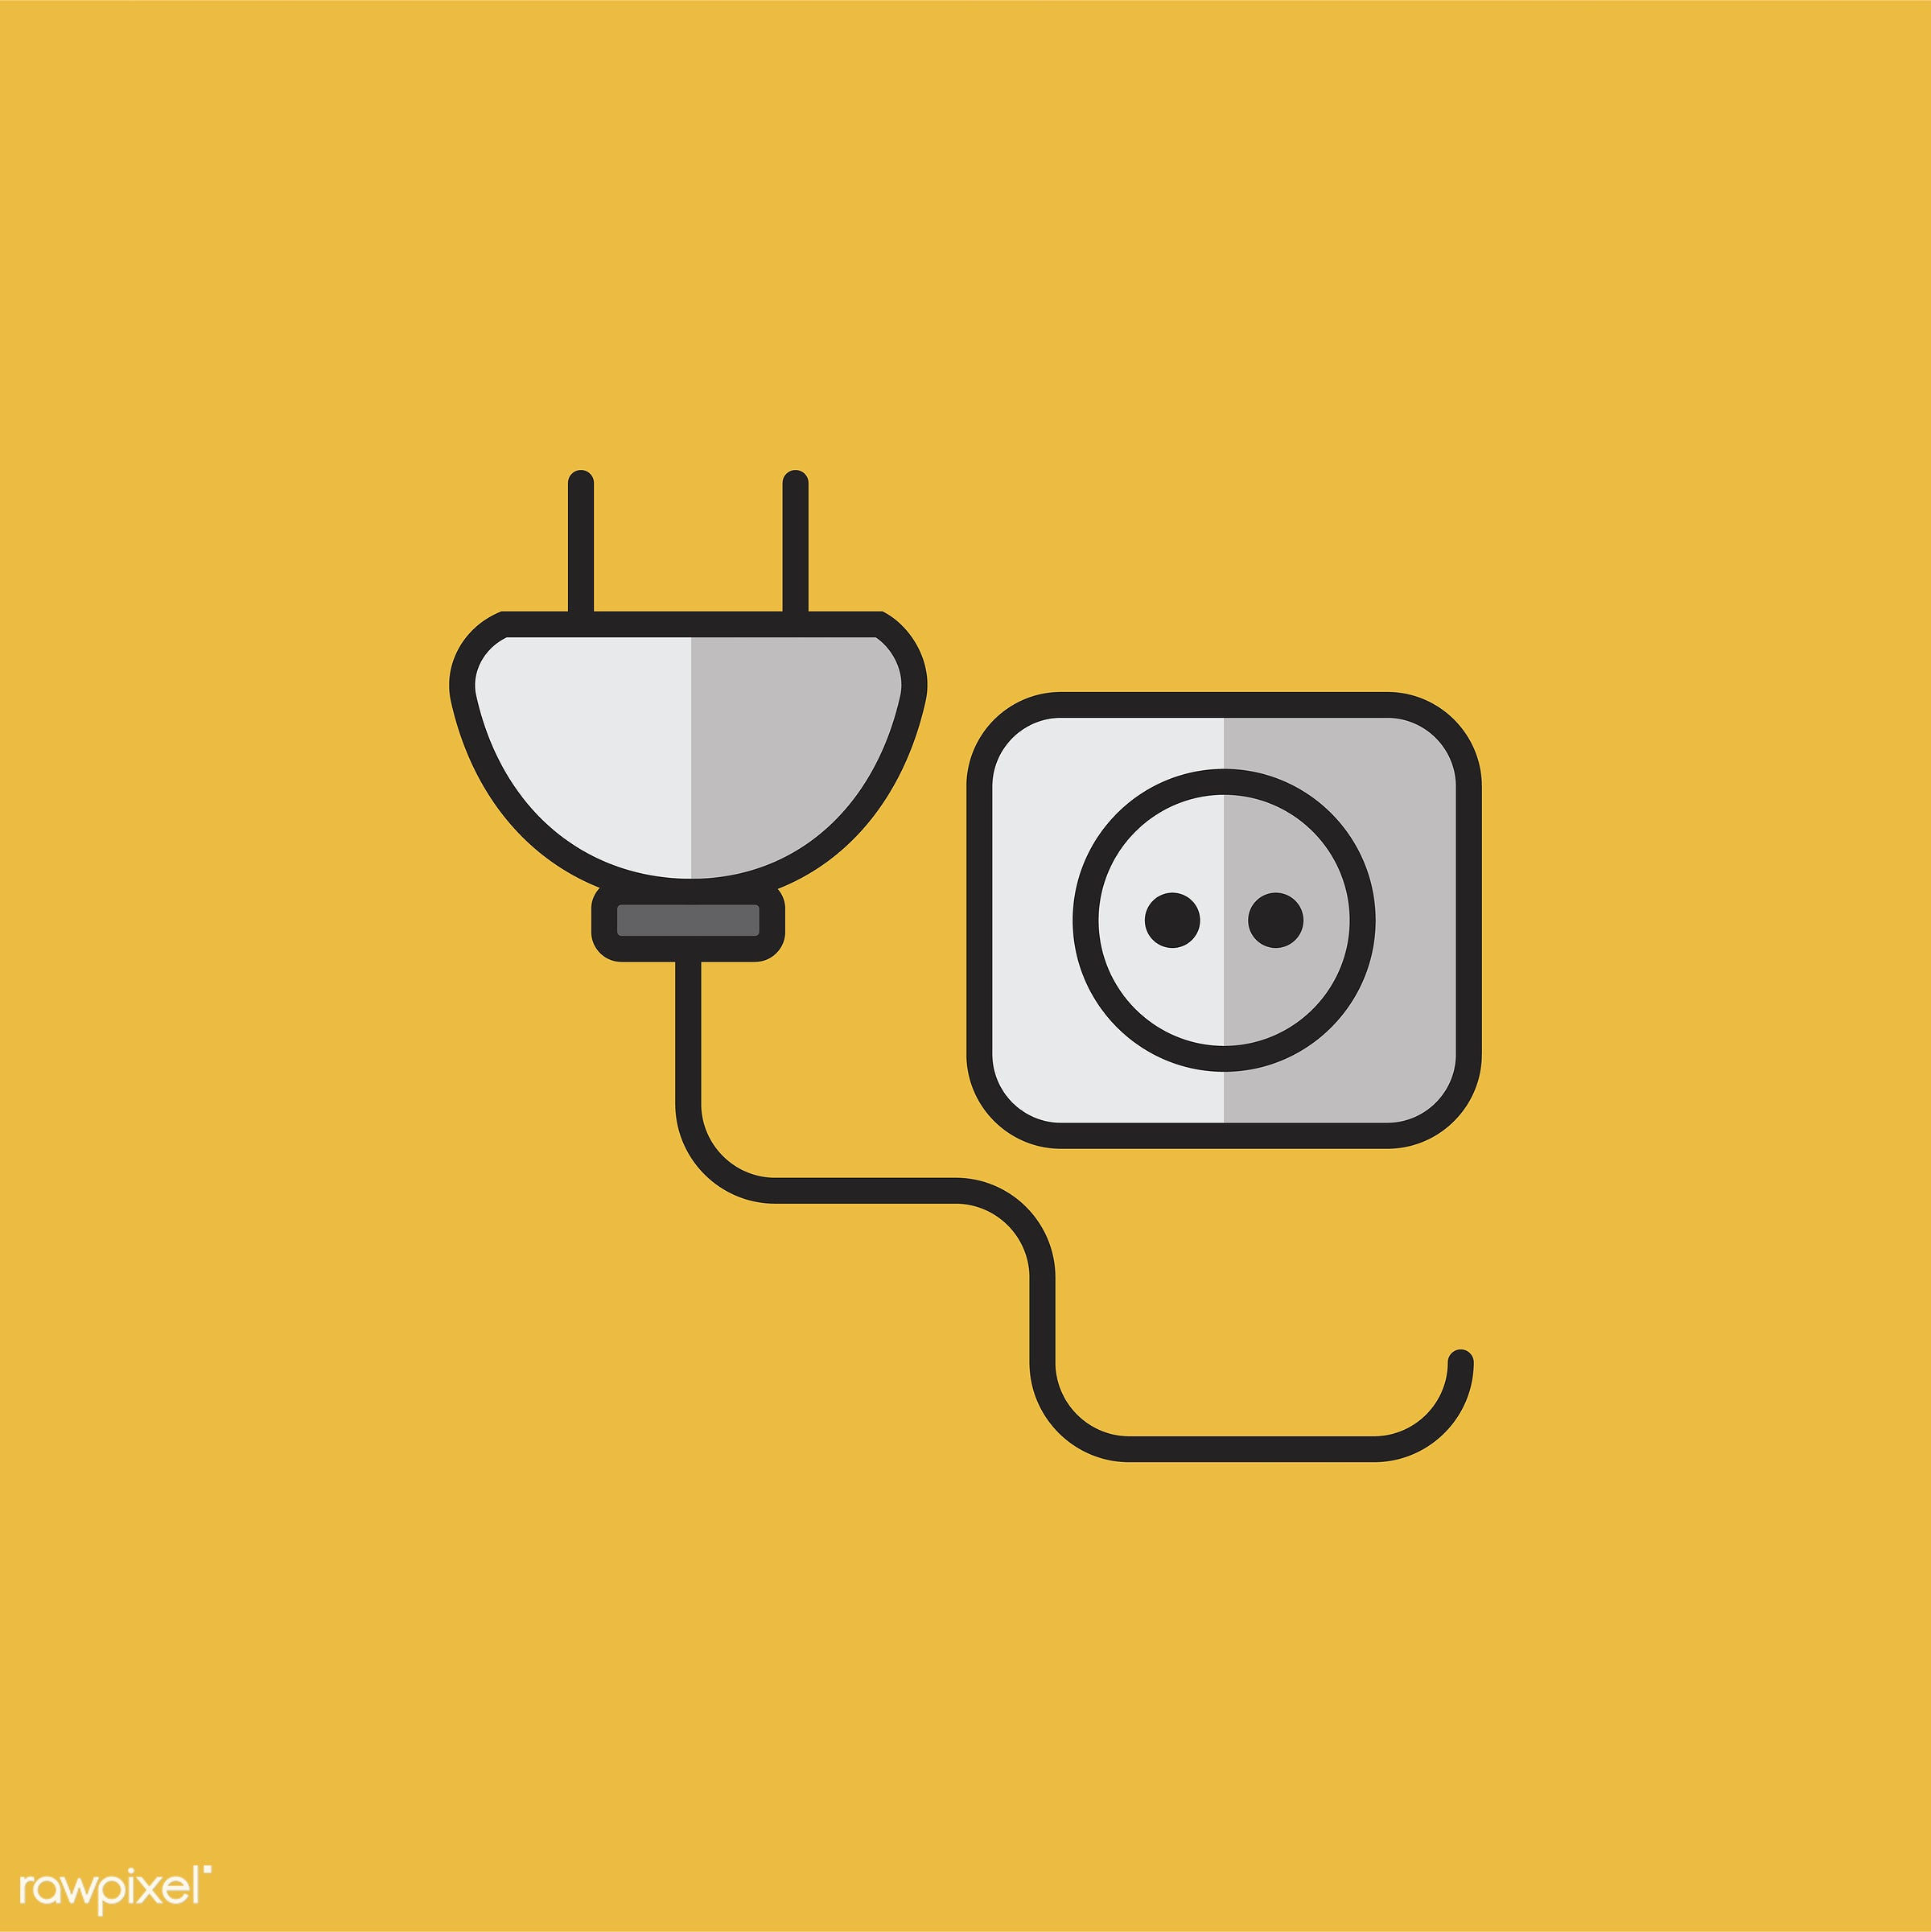 Illustration of power plug and socket - biology, chemistry, class, design, education, equipments, graphic, icon,...